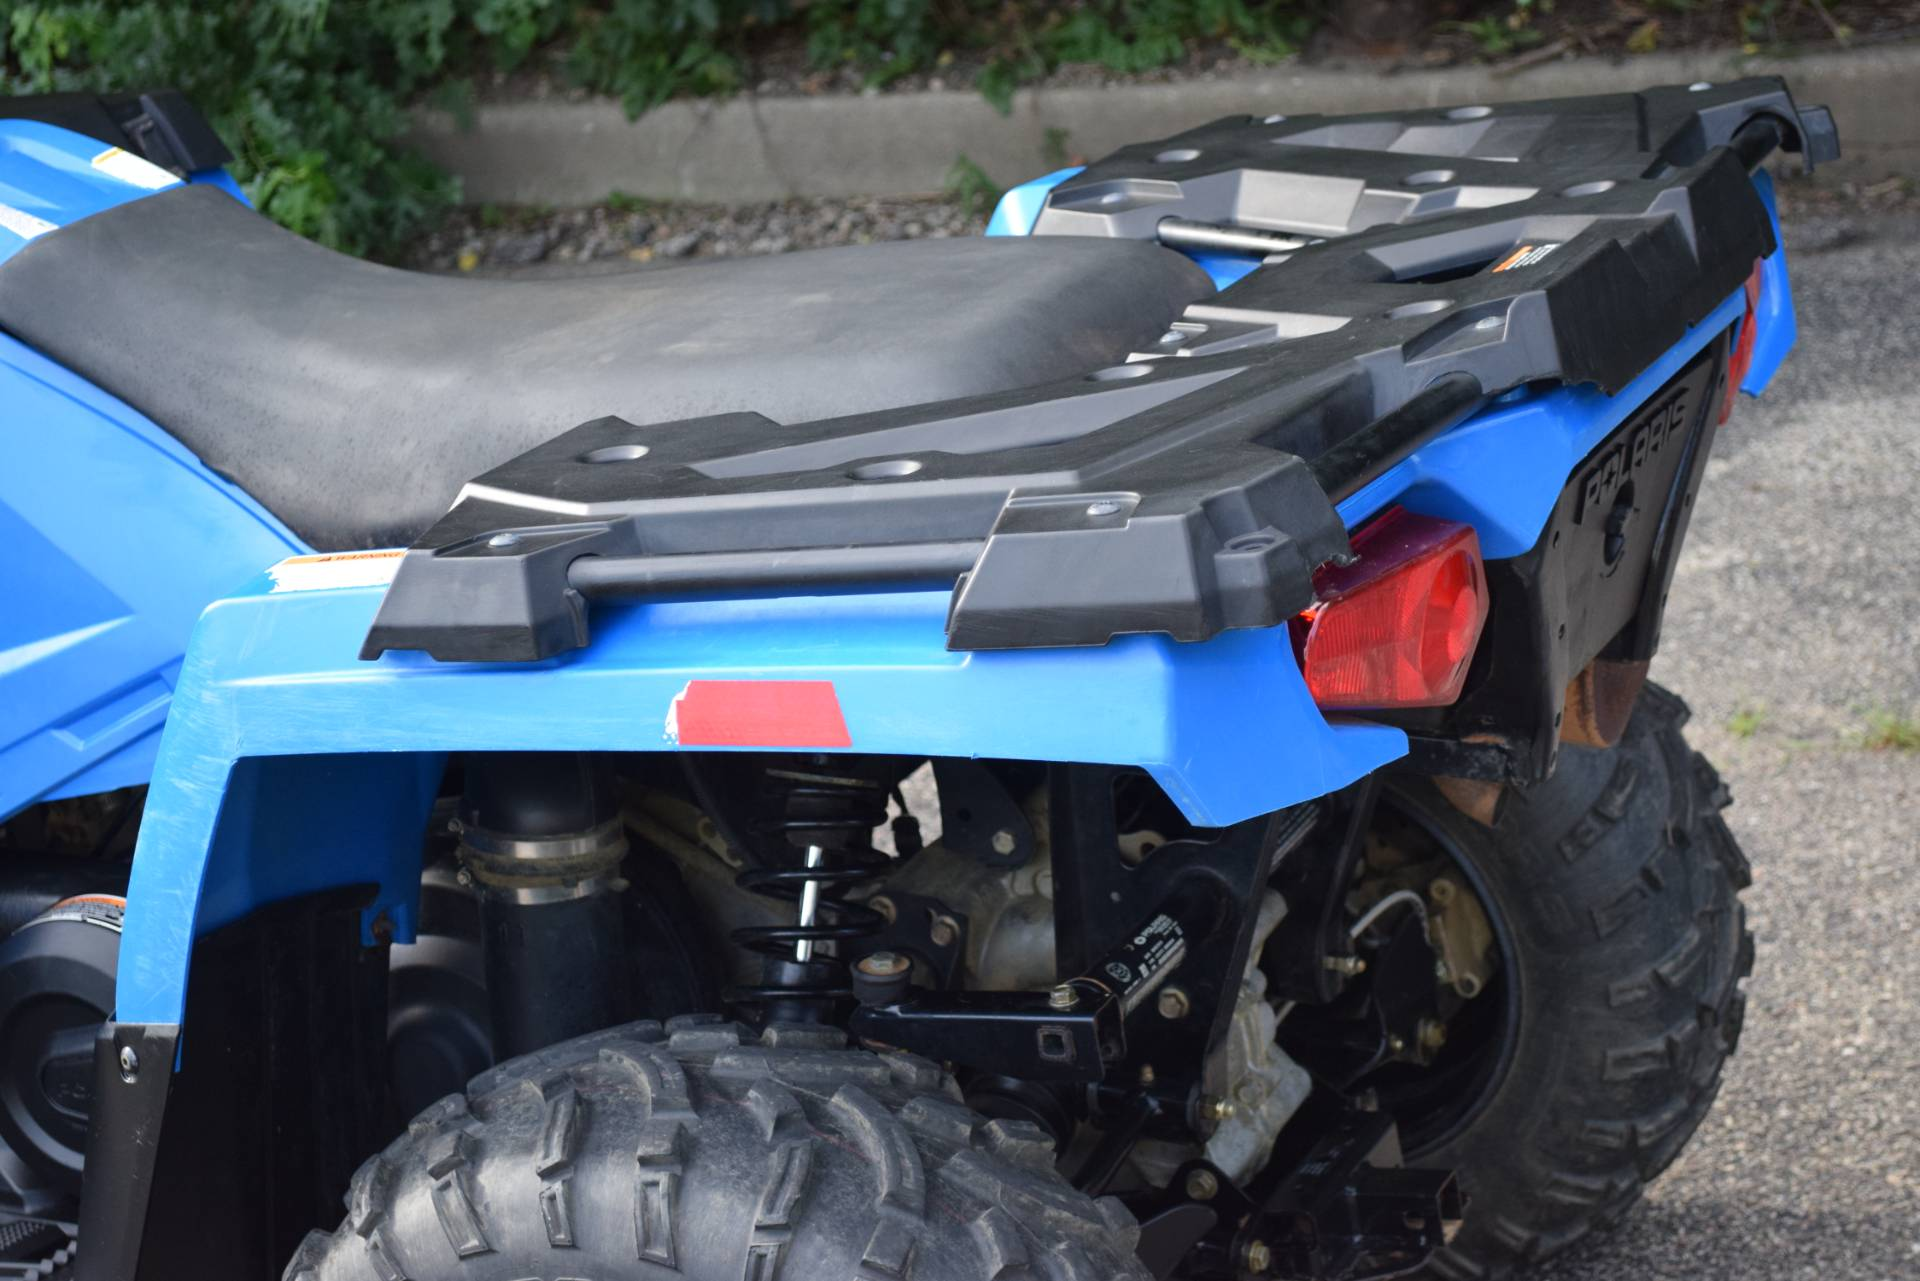 2017 Polaris Sportsman 450 H.O. in Wauconda, Illinois - Photo 18